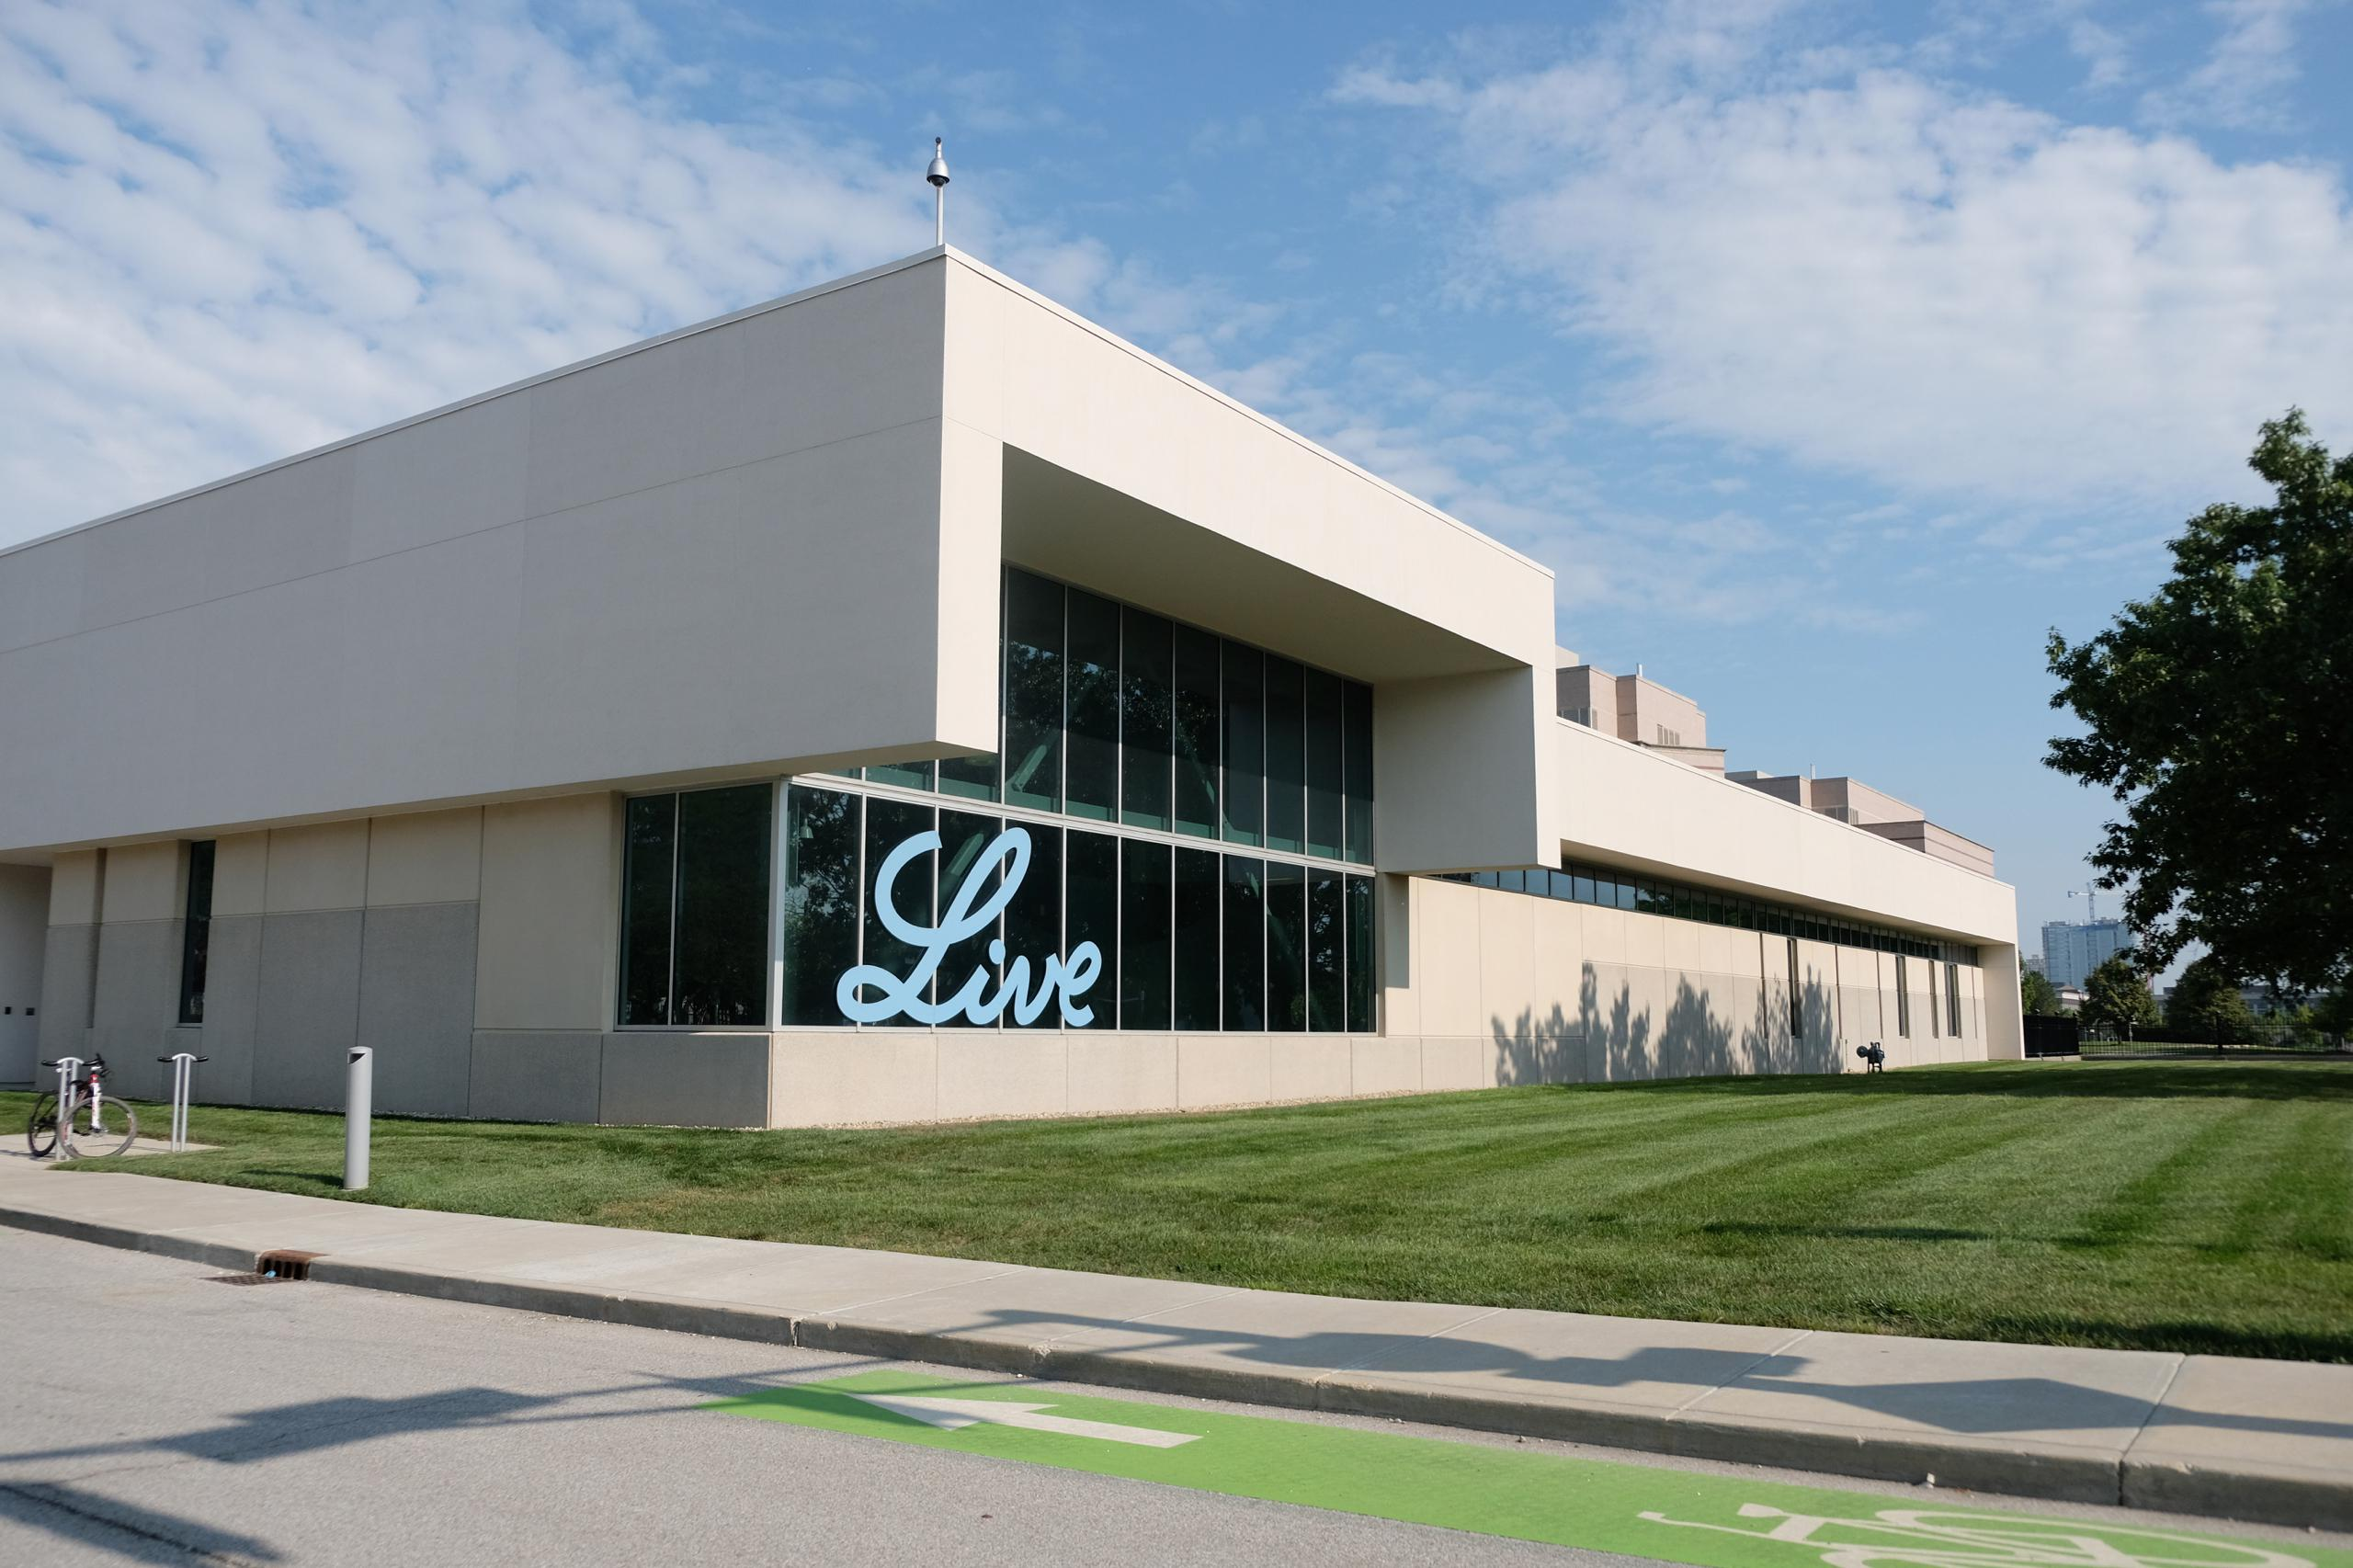 Building on Eli Lilly's campus in Indianapolis, Indiana.